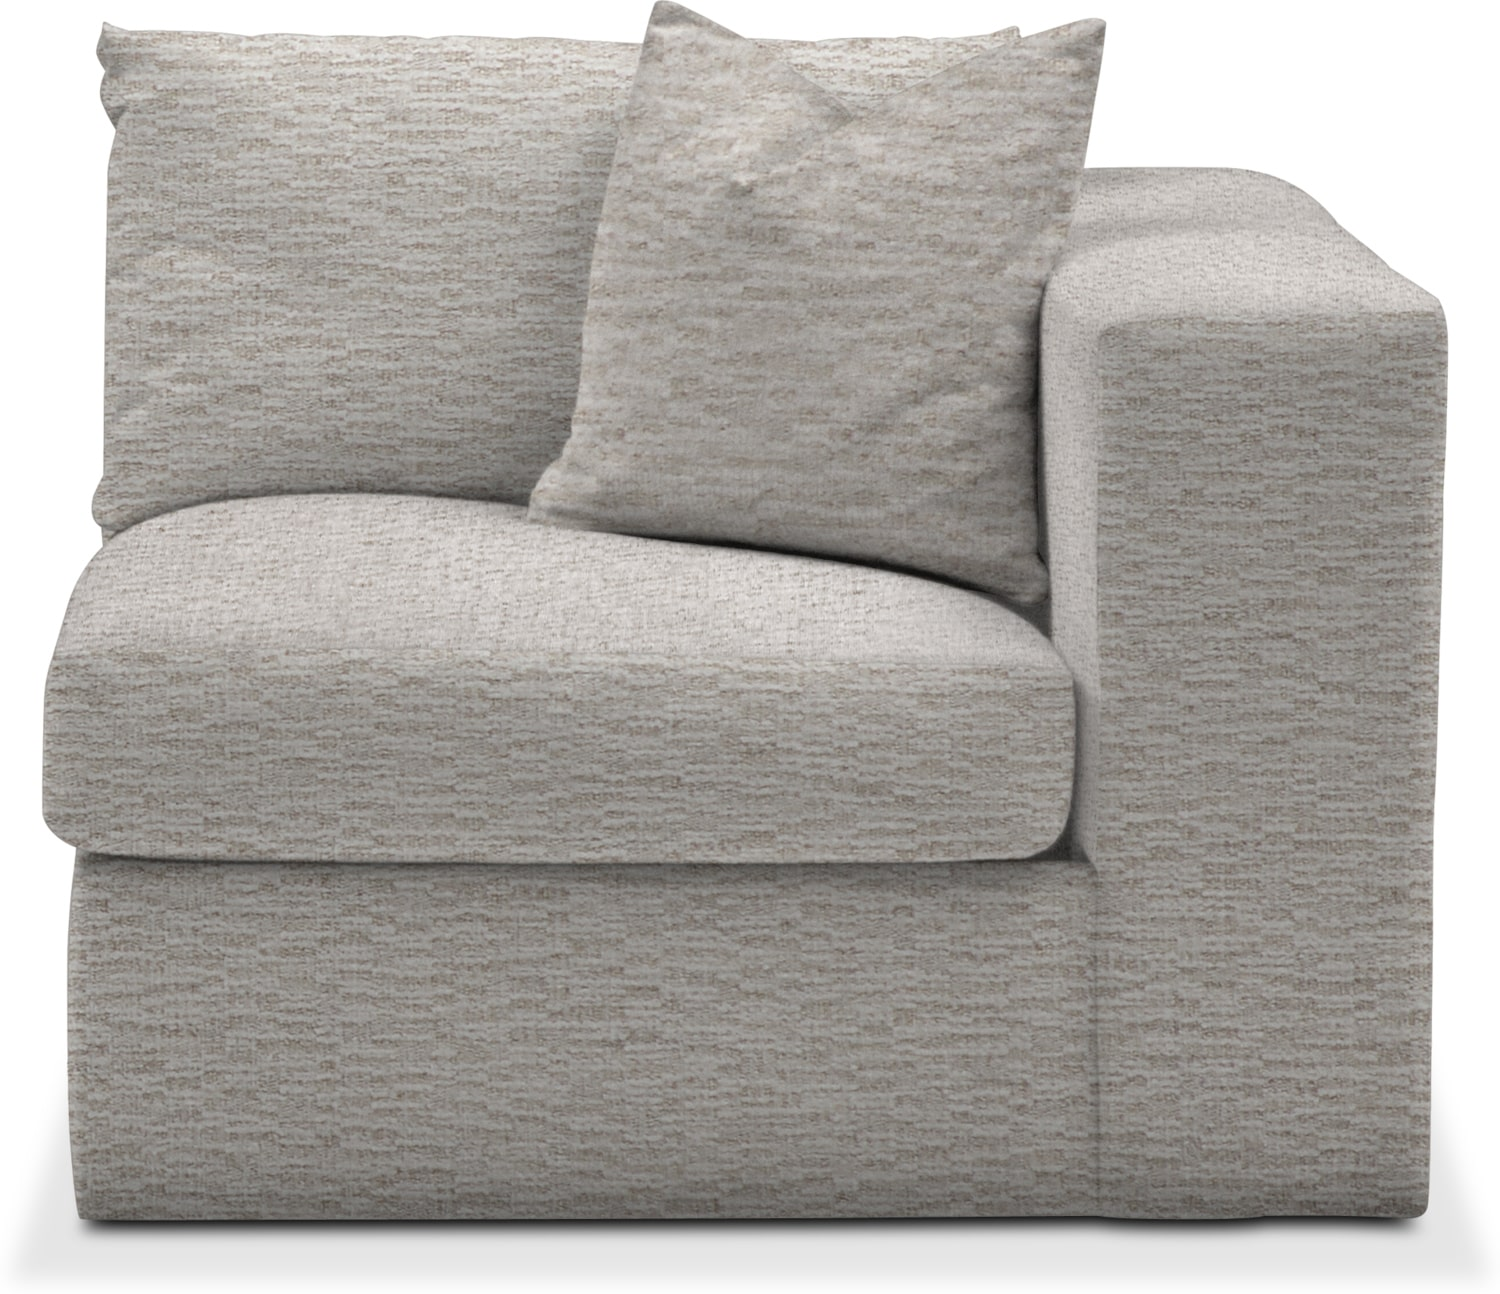 Living Room Furniture - Collin Right Arm Facing Chair